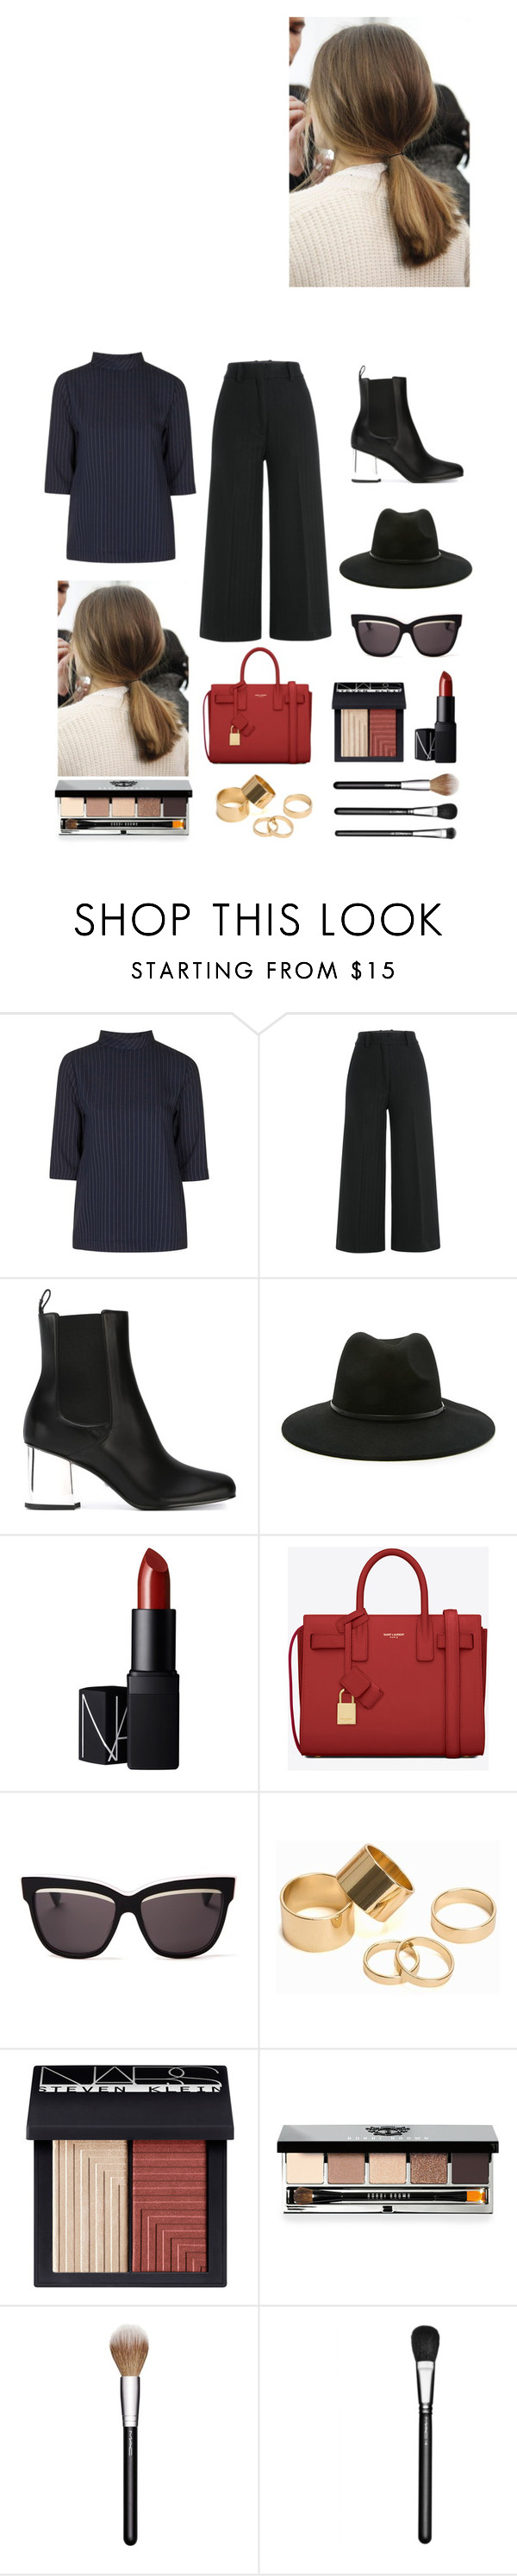 """""""Simple,sleek, & chic"""" by micalkalimi on Polyvore featuring Topshop, Jil Sander, Gucci, Forever 21, NARS Cosmetics, Yves Saint Laurent, Christian Dior, Pieces, Bobbi Brown Cosmetics and MAC Cosmetics"""